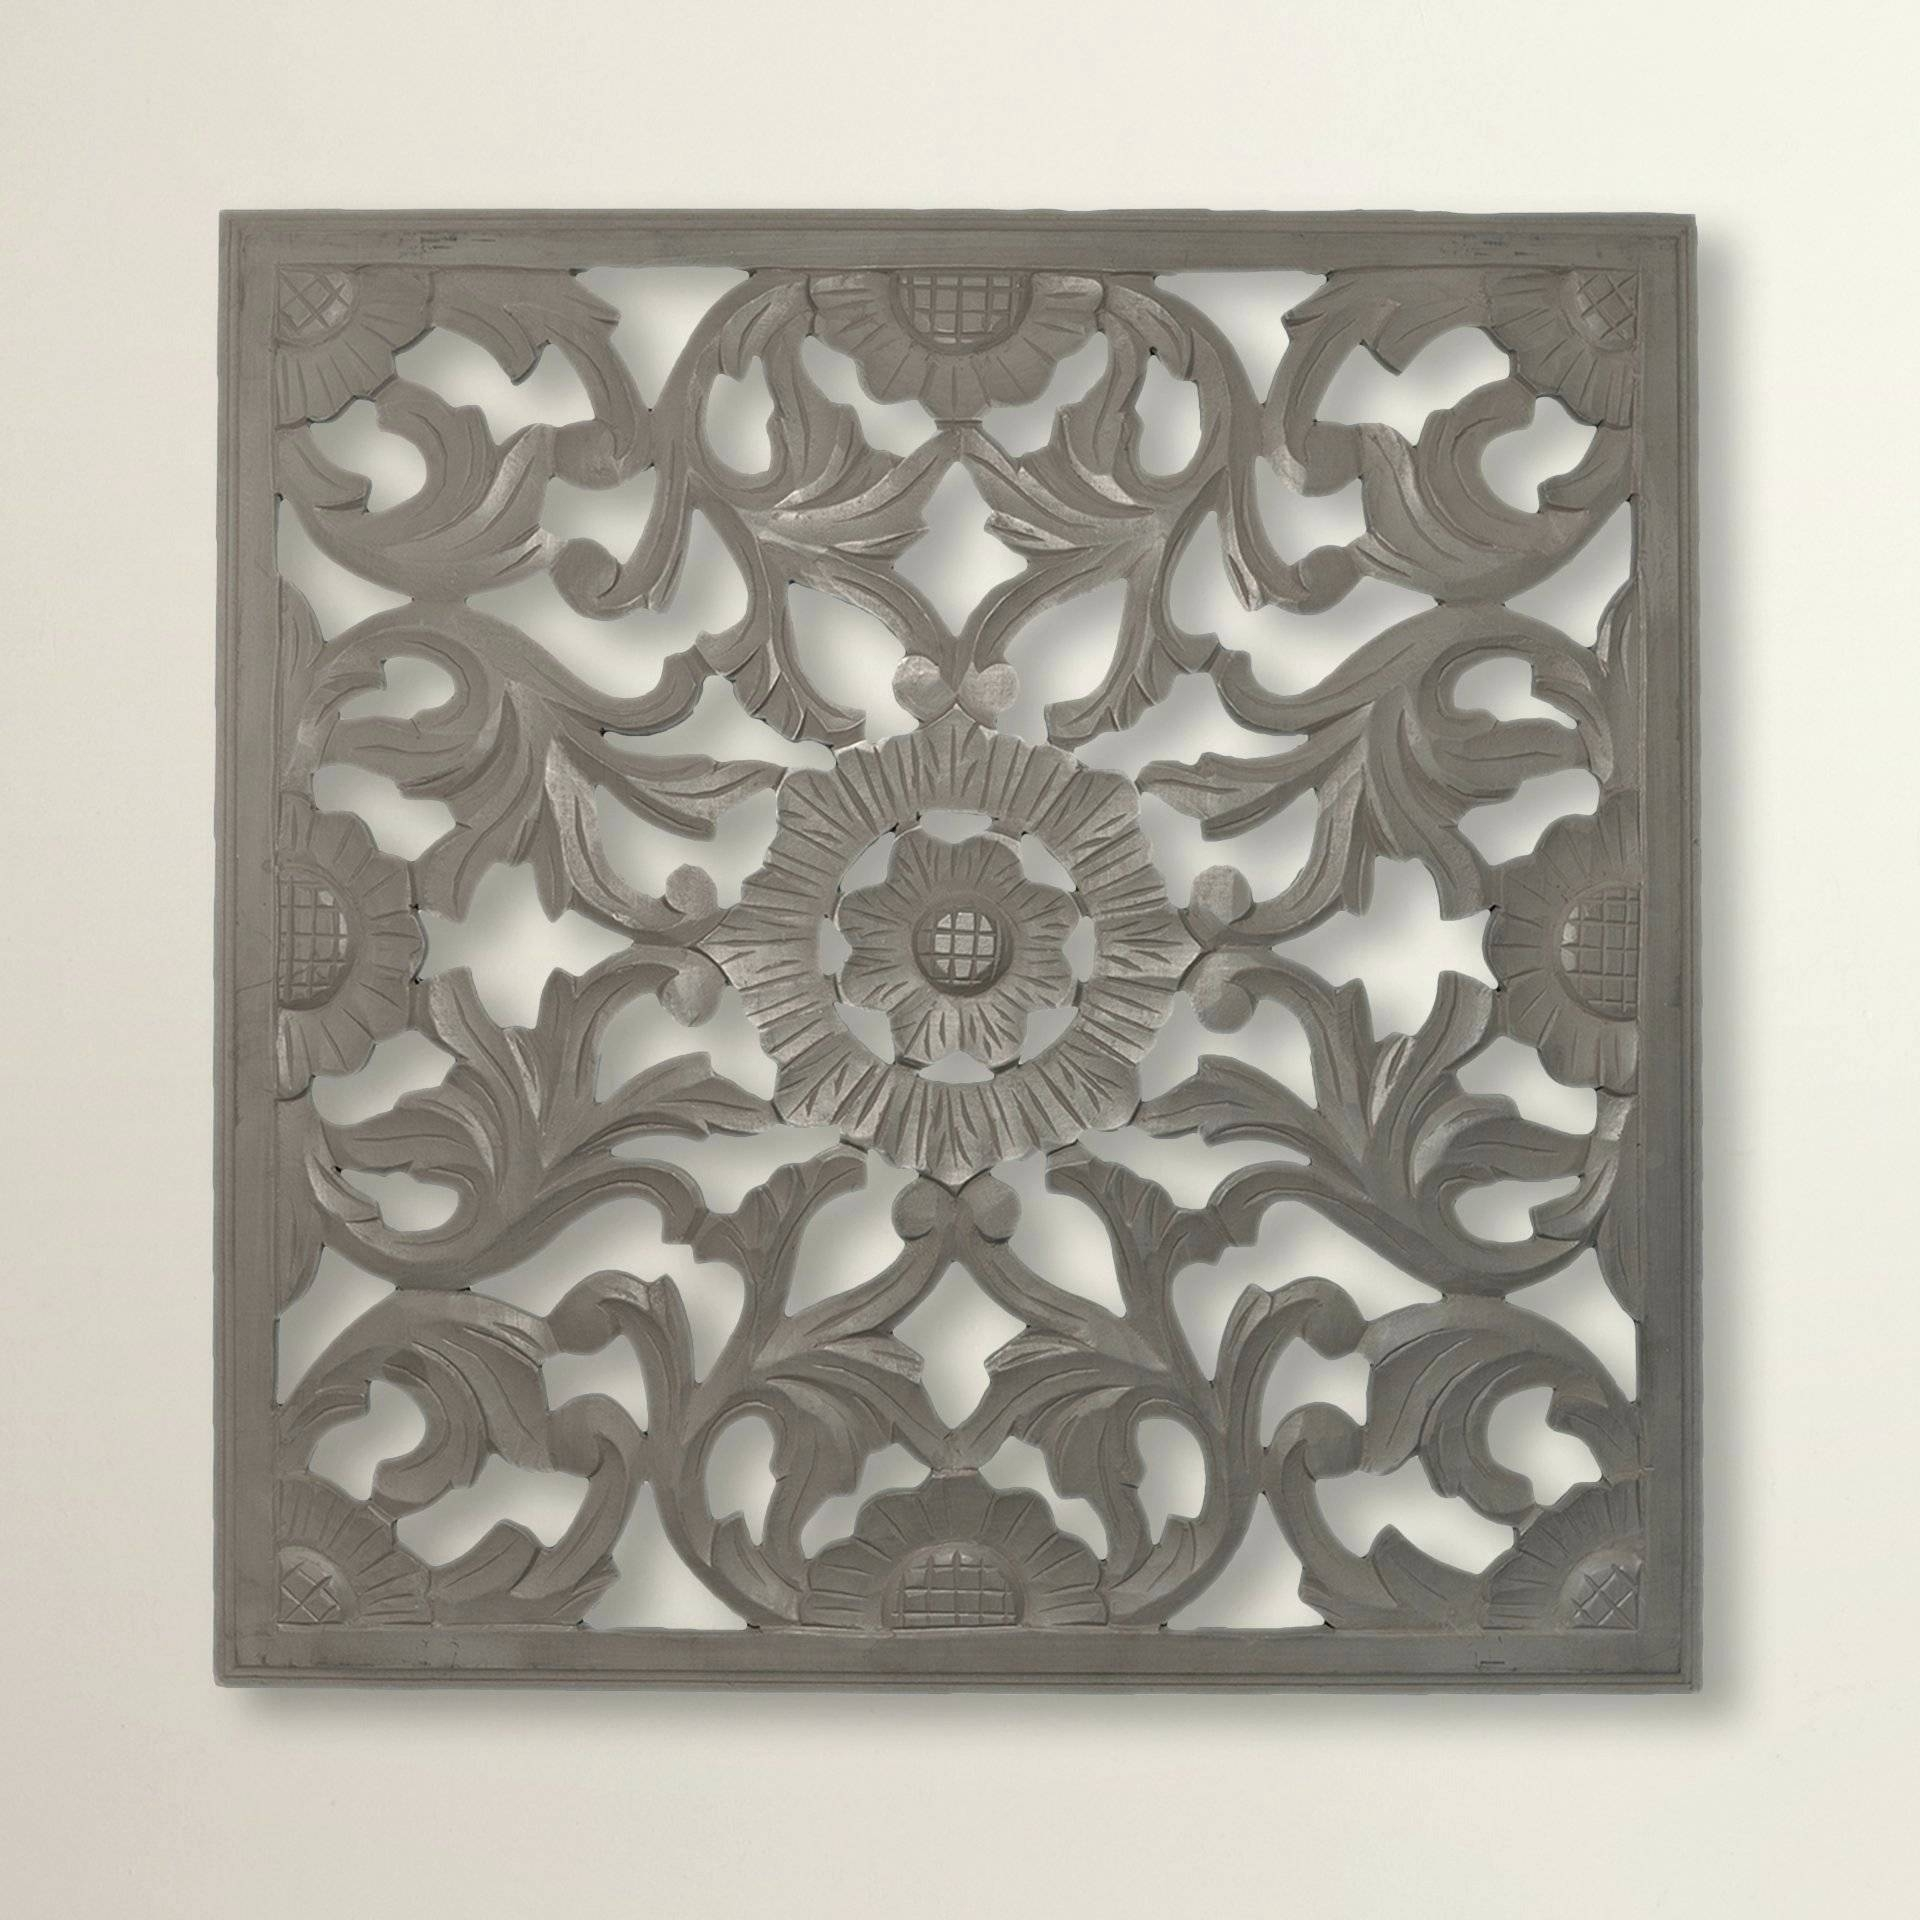 Wall Arts ~ Chic Rustic Metal Wall Art Rustic Wall Decor Awesome With Regard To Most Recently Released White Metal Wall Art (View 16 of 20)